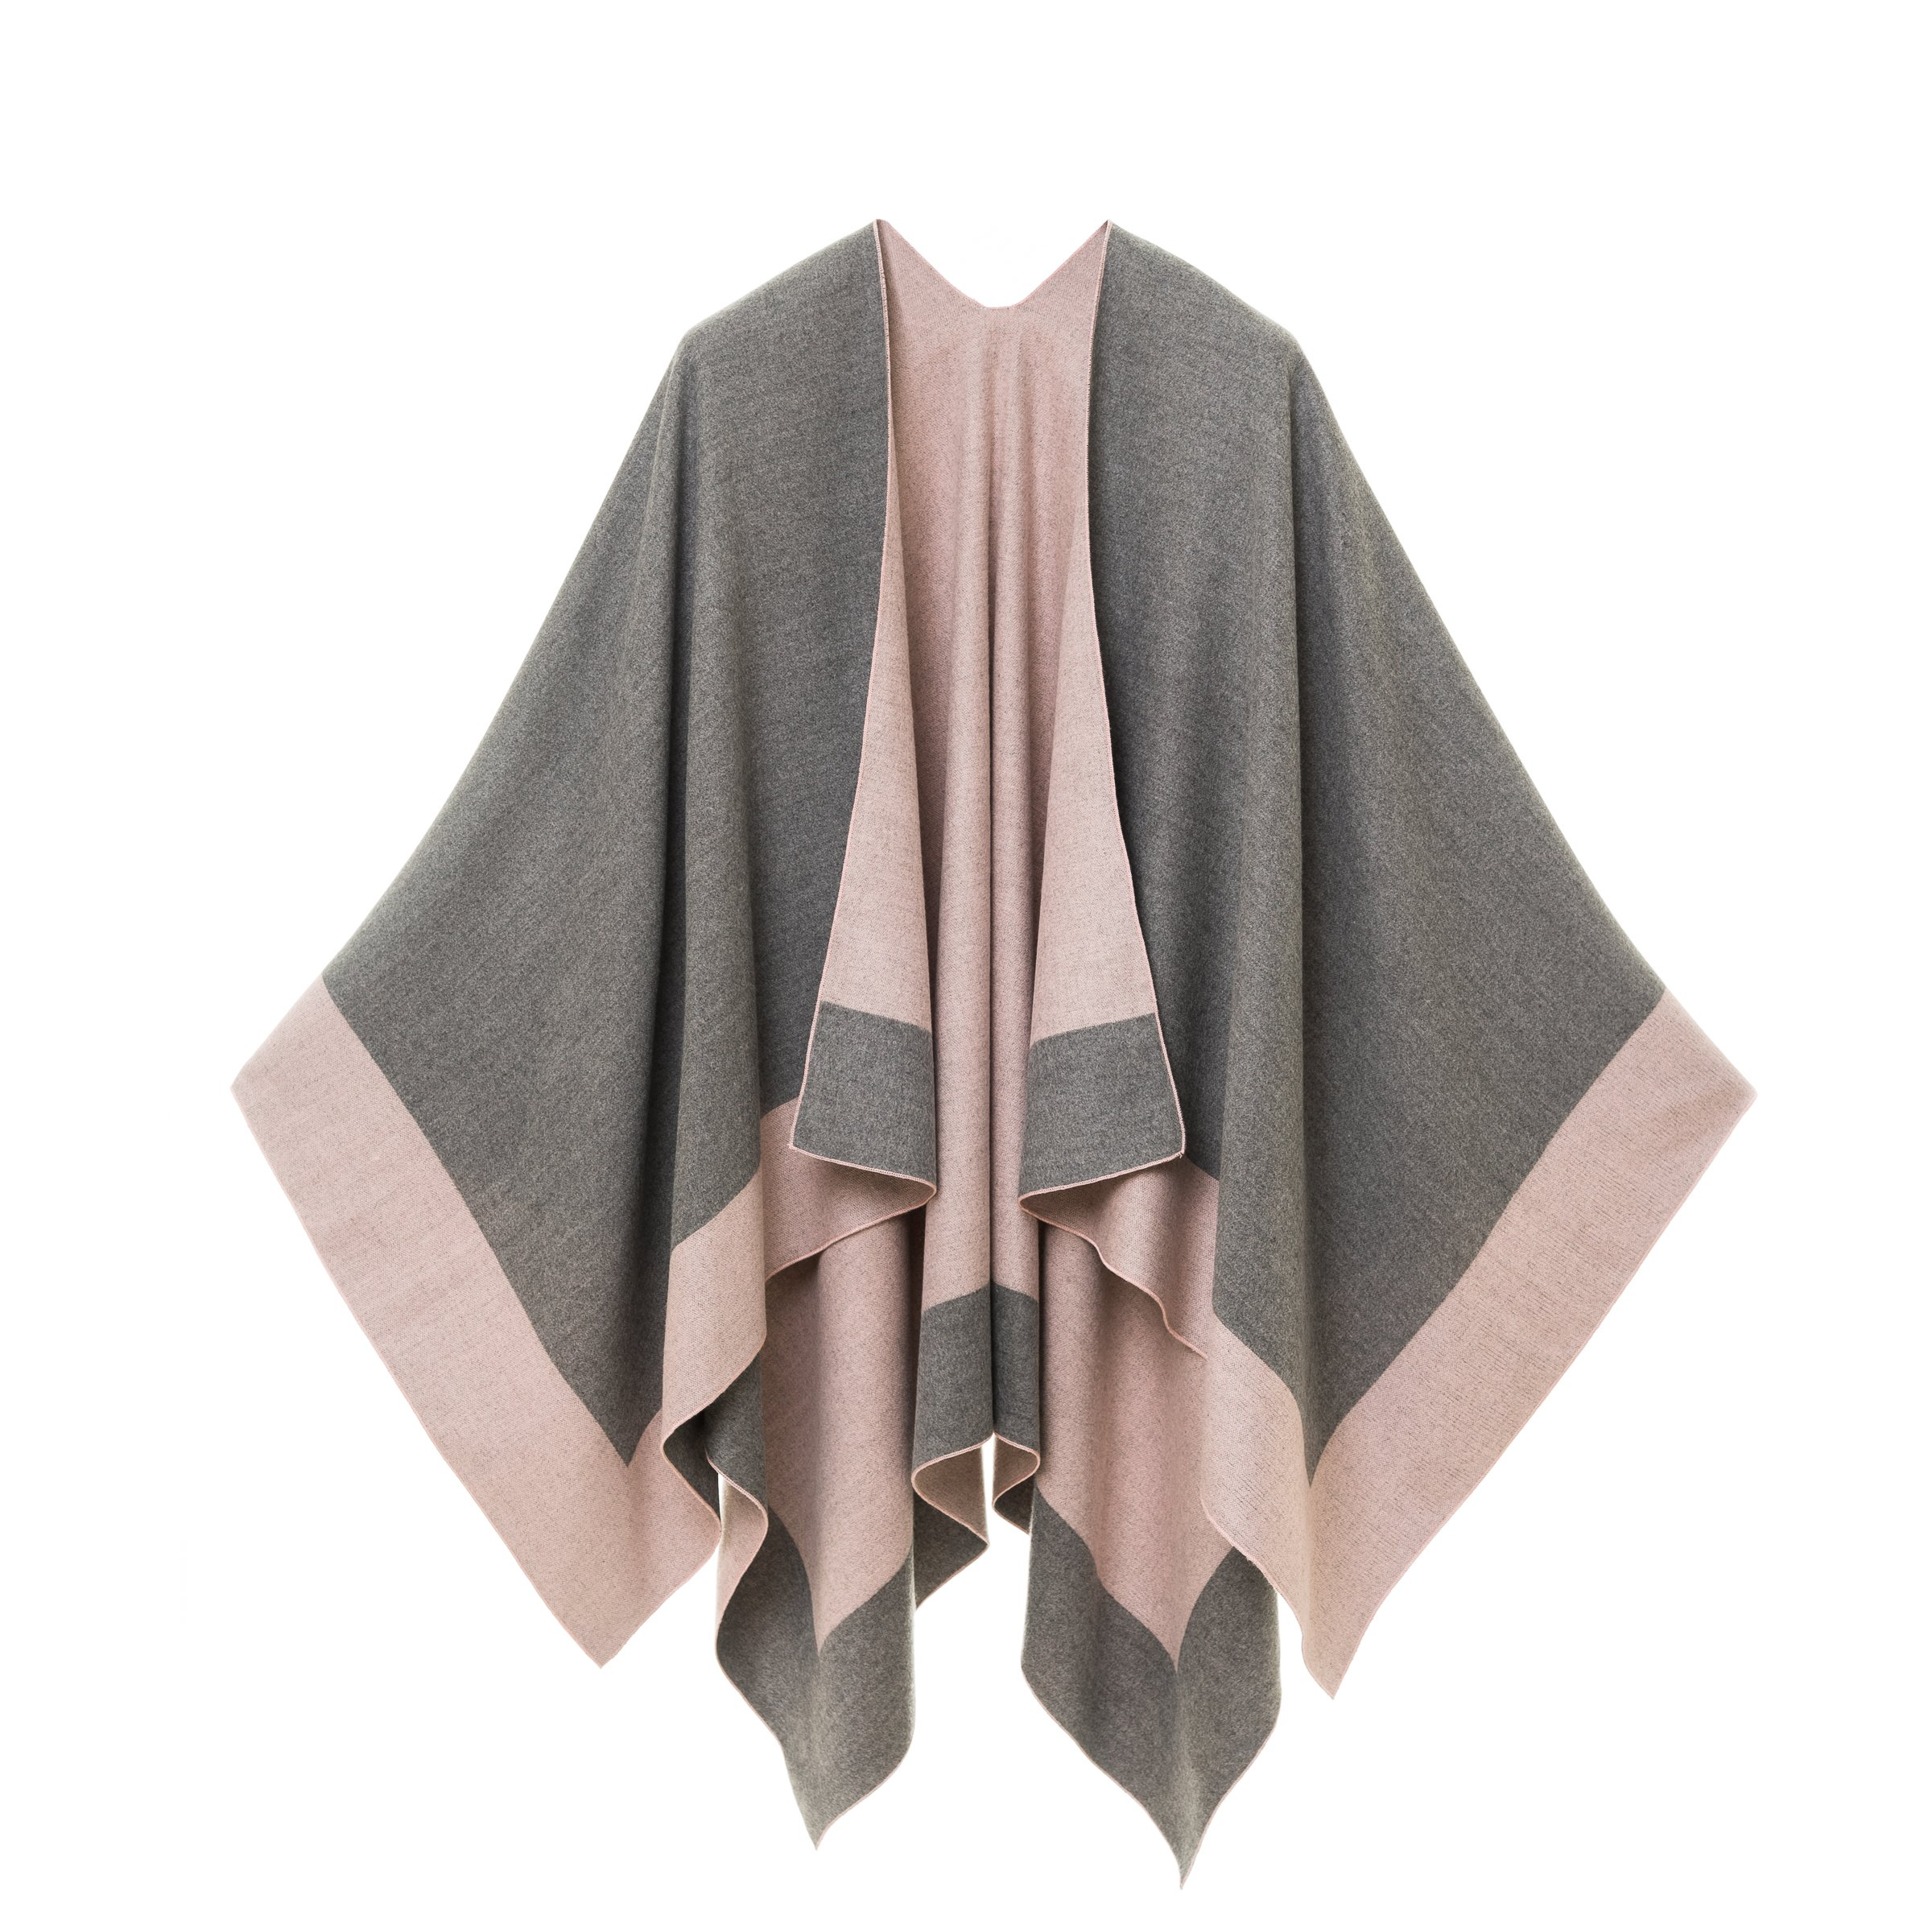 Cardigan Poncho Cape: Women Elegant Pink Gray Cardigan Shawl Wrap Sweater Coat for Winter (Gray Pink)